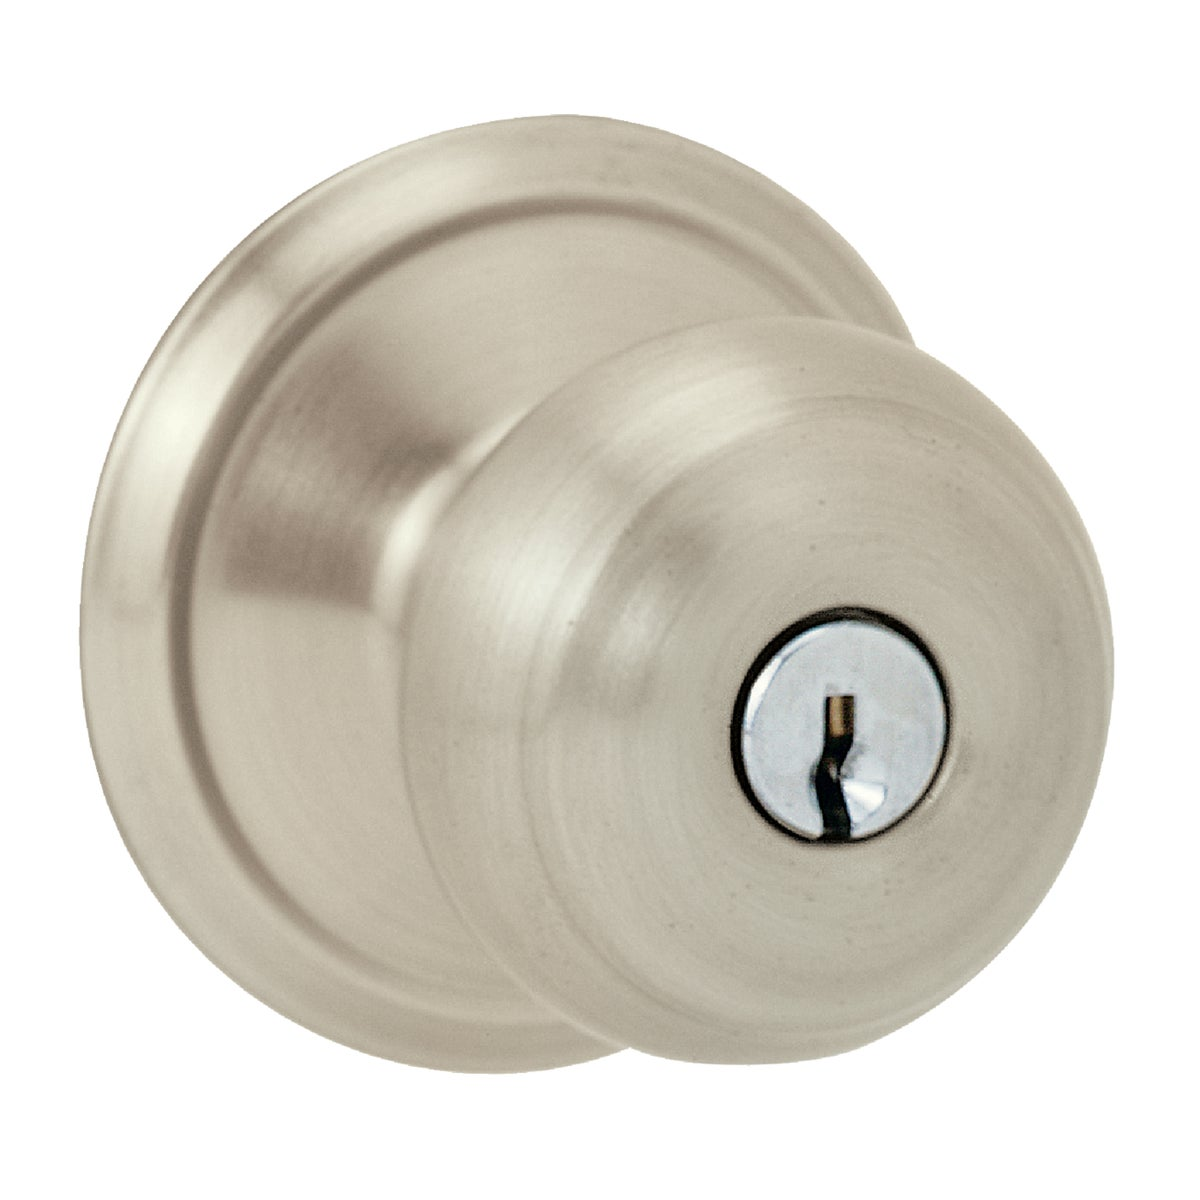 SN GEO ENTRY LOCKSET BX